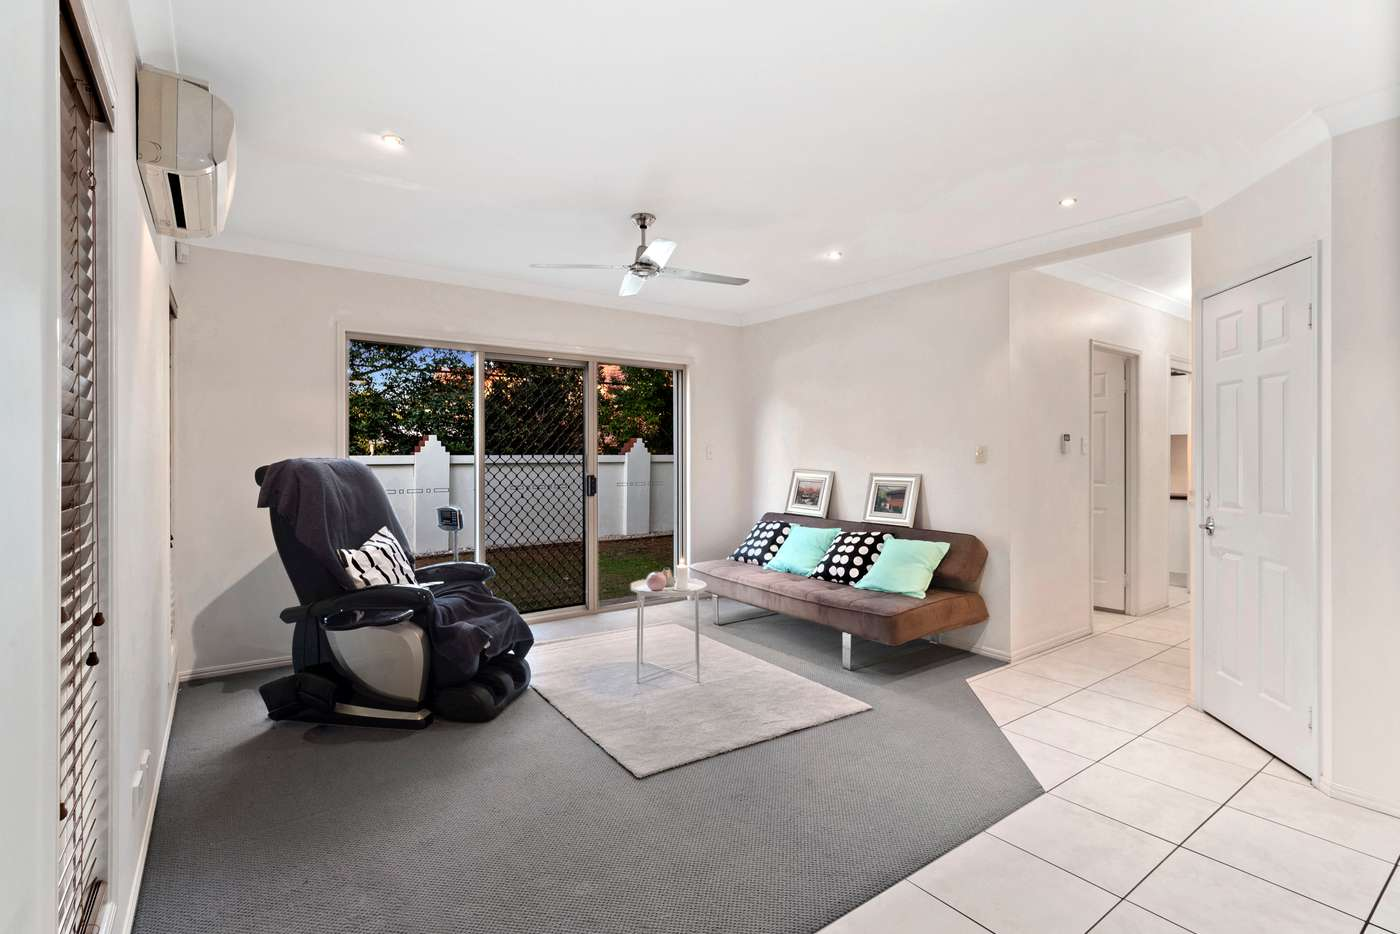 Sixth view of Homely house listing, 20 Parkhurst Place, Kuraby QLD 4112